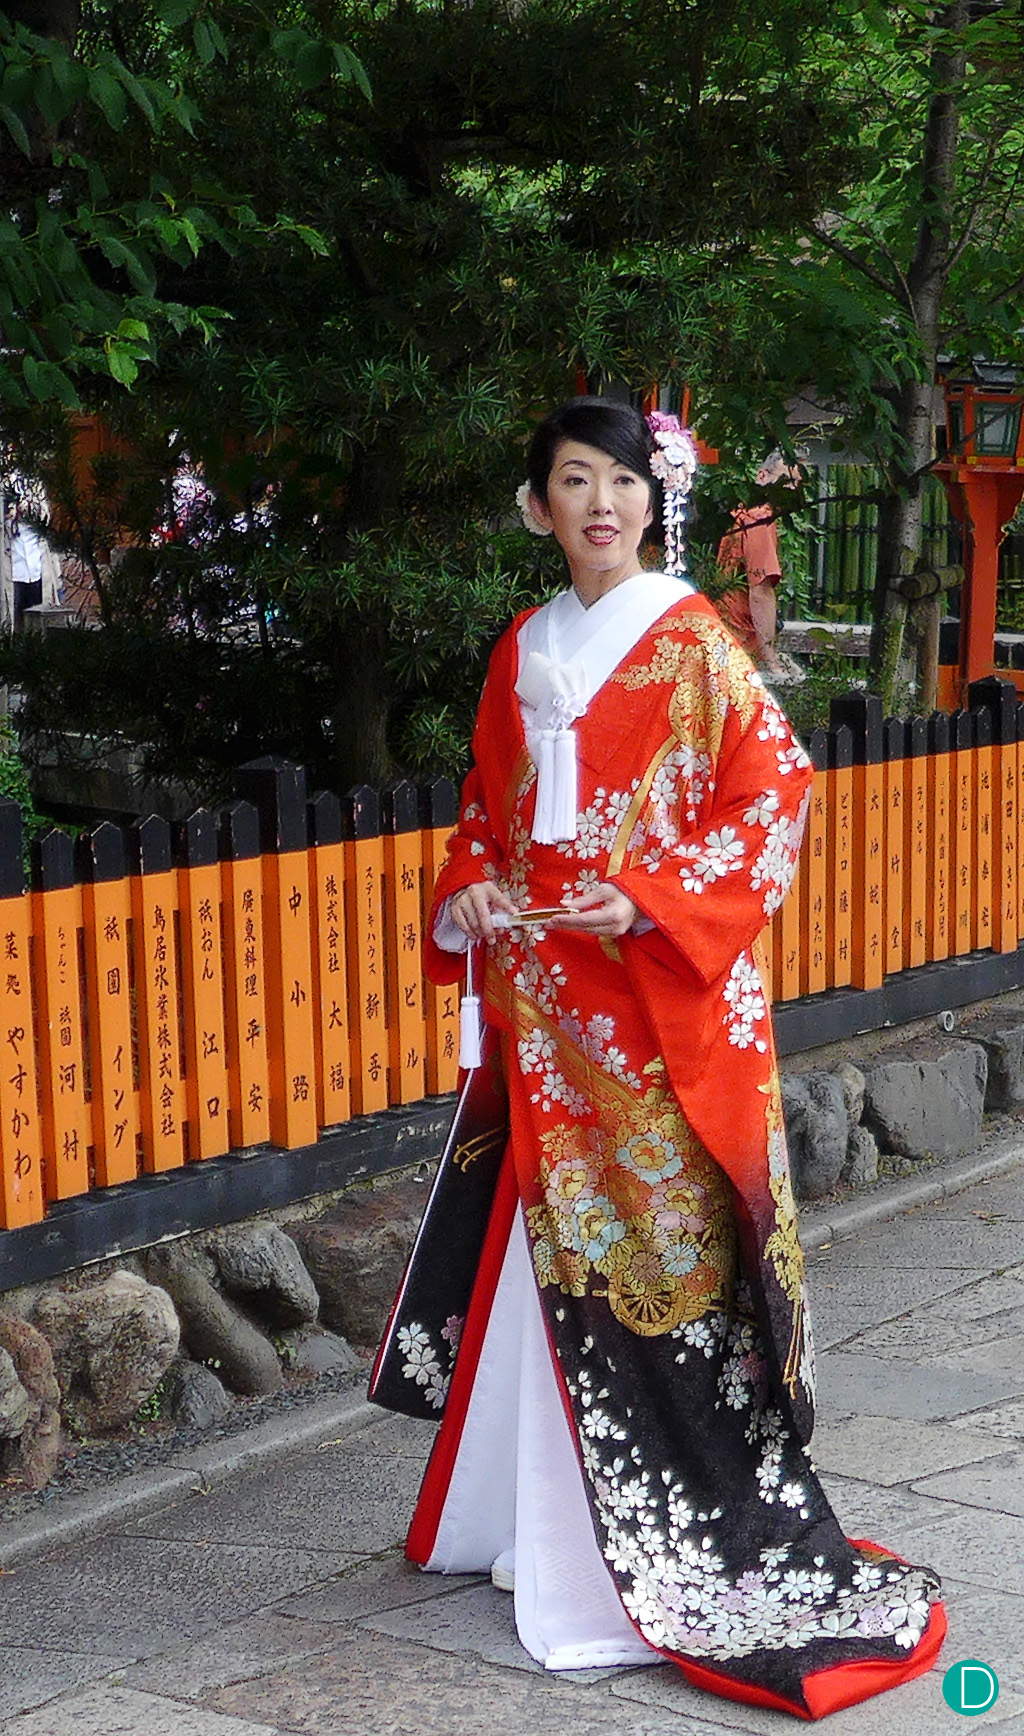 My submission. A lady in her wedding kimono in Gion, Kyoto.